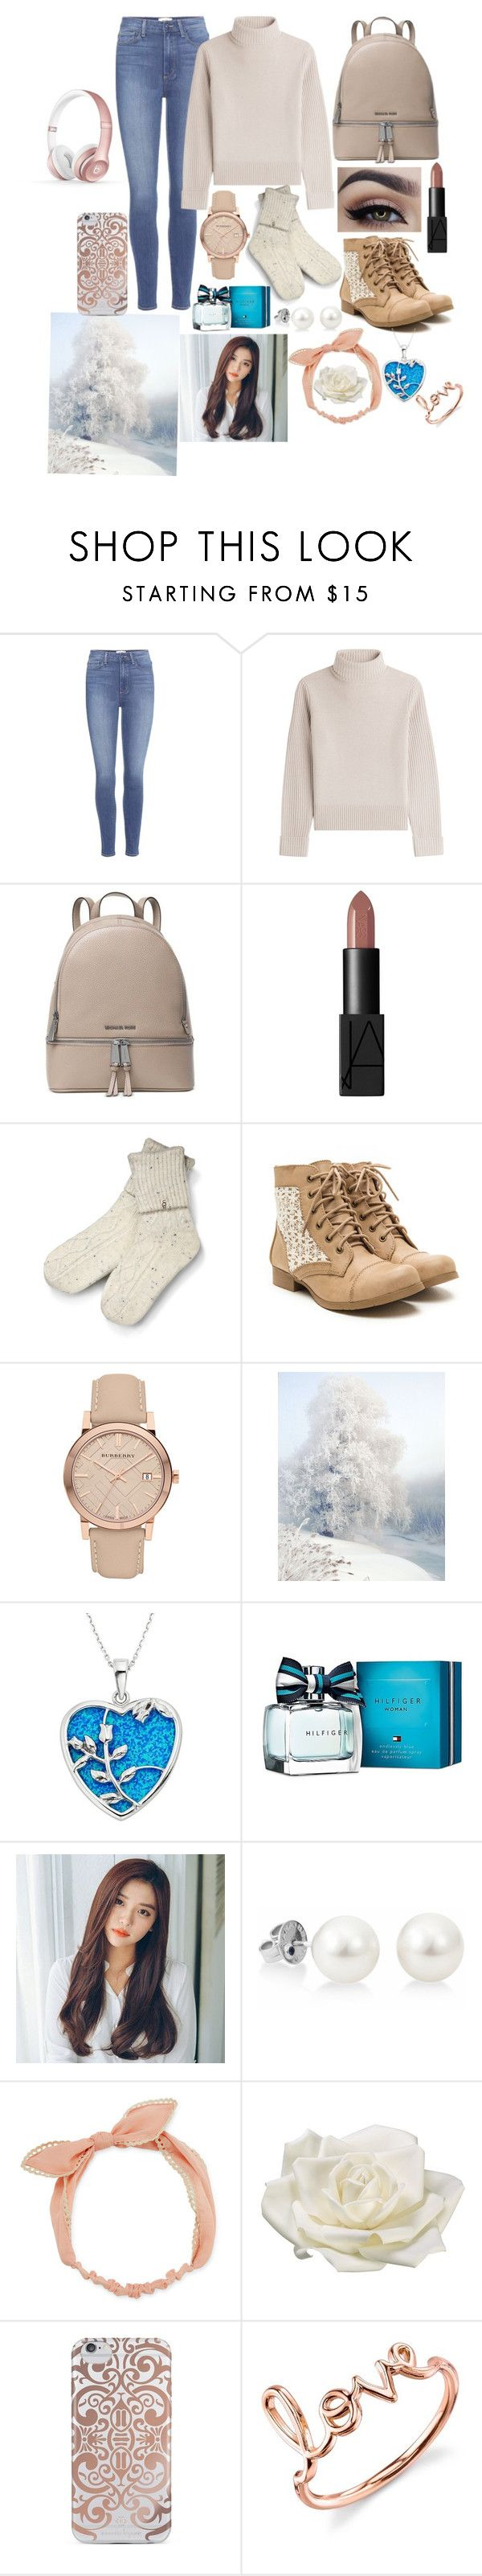 """Ready for Christmas"" by karressguidycapers ❤ liked on Polyvore featuring Paige Denim, Vanessa Seward, MICHAEL Michael Kors, NARS Cosmetics, UGG, Burberry, Disney, Tommy Hilfiger, Arizona and Allstate Floral"